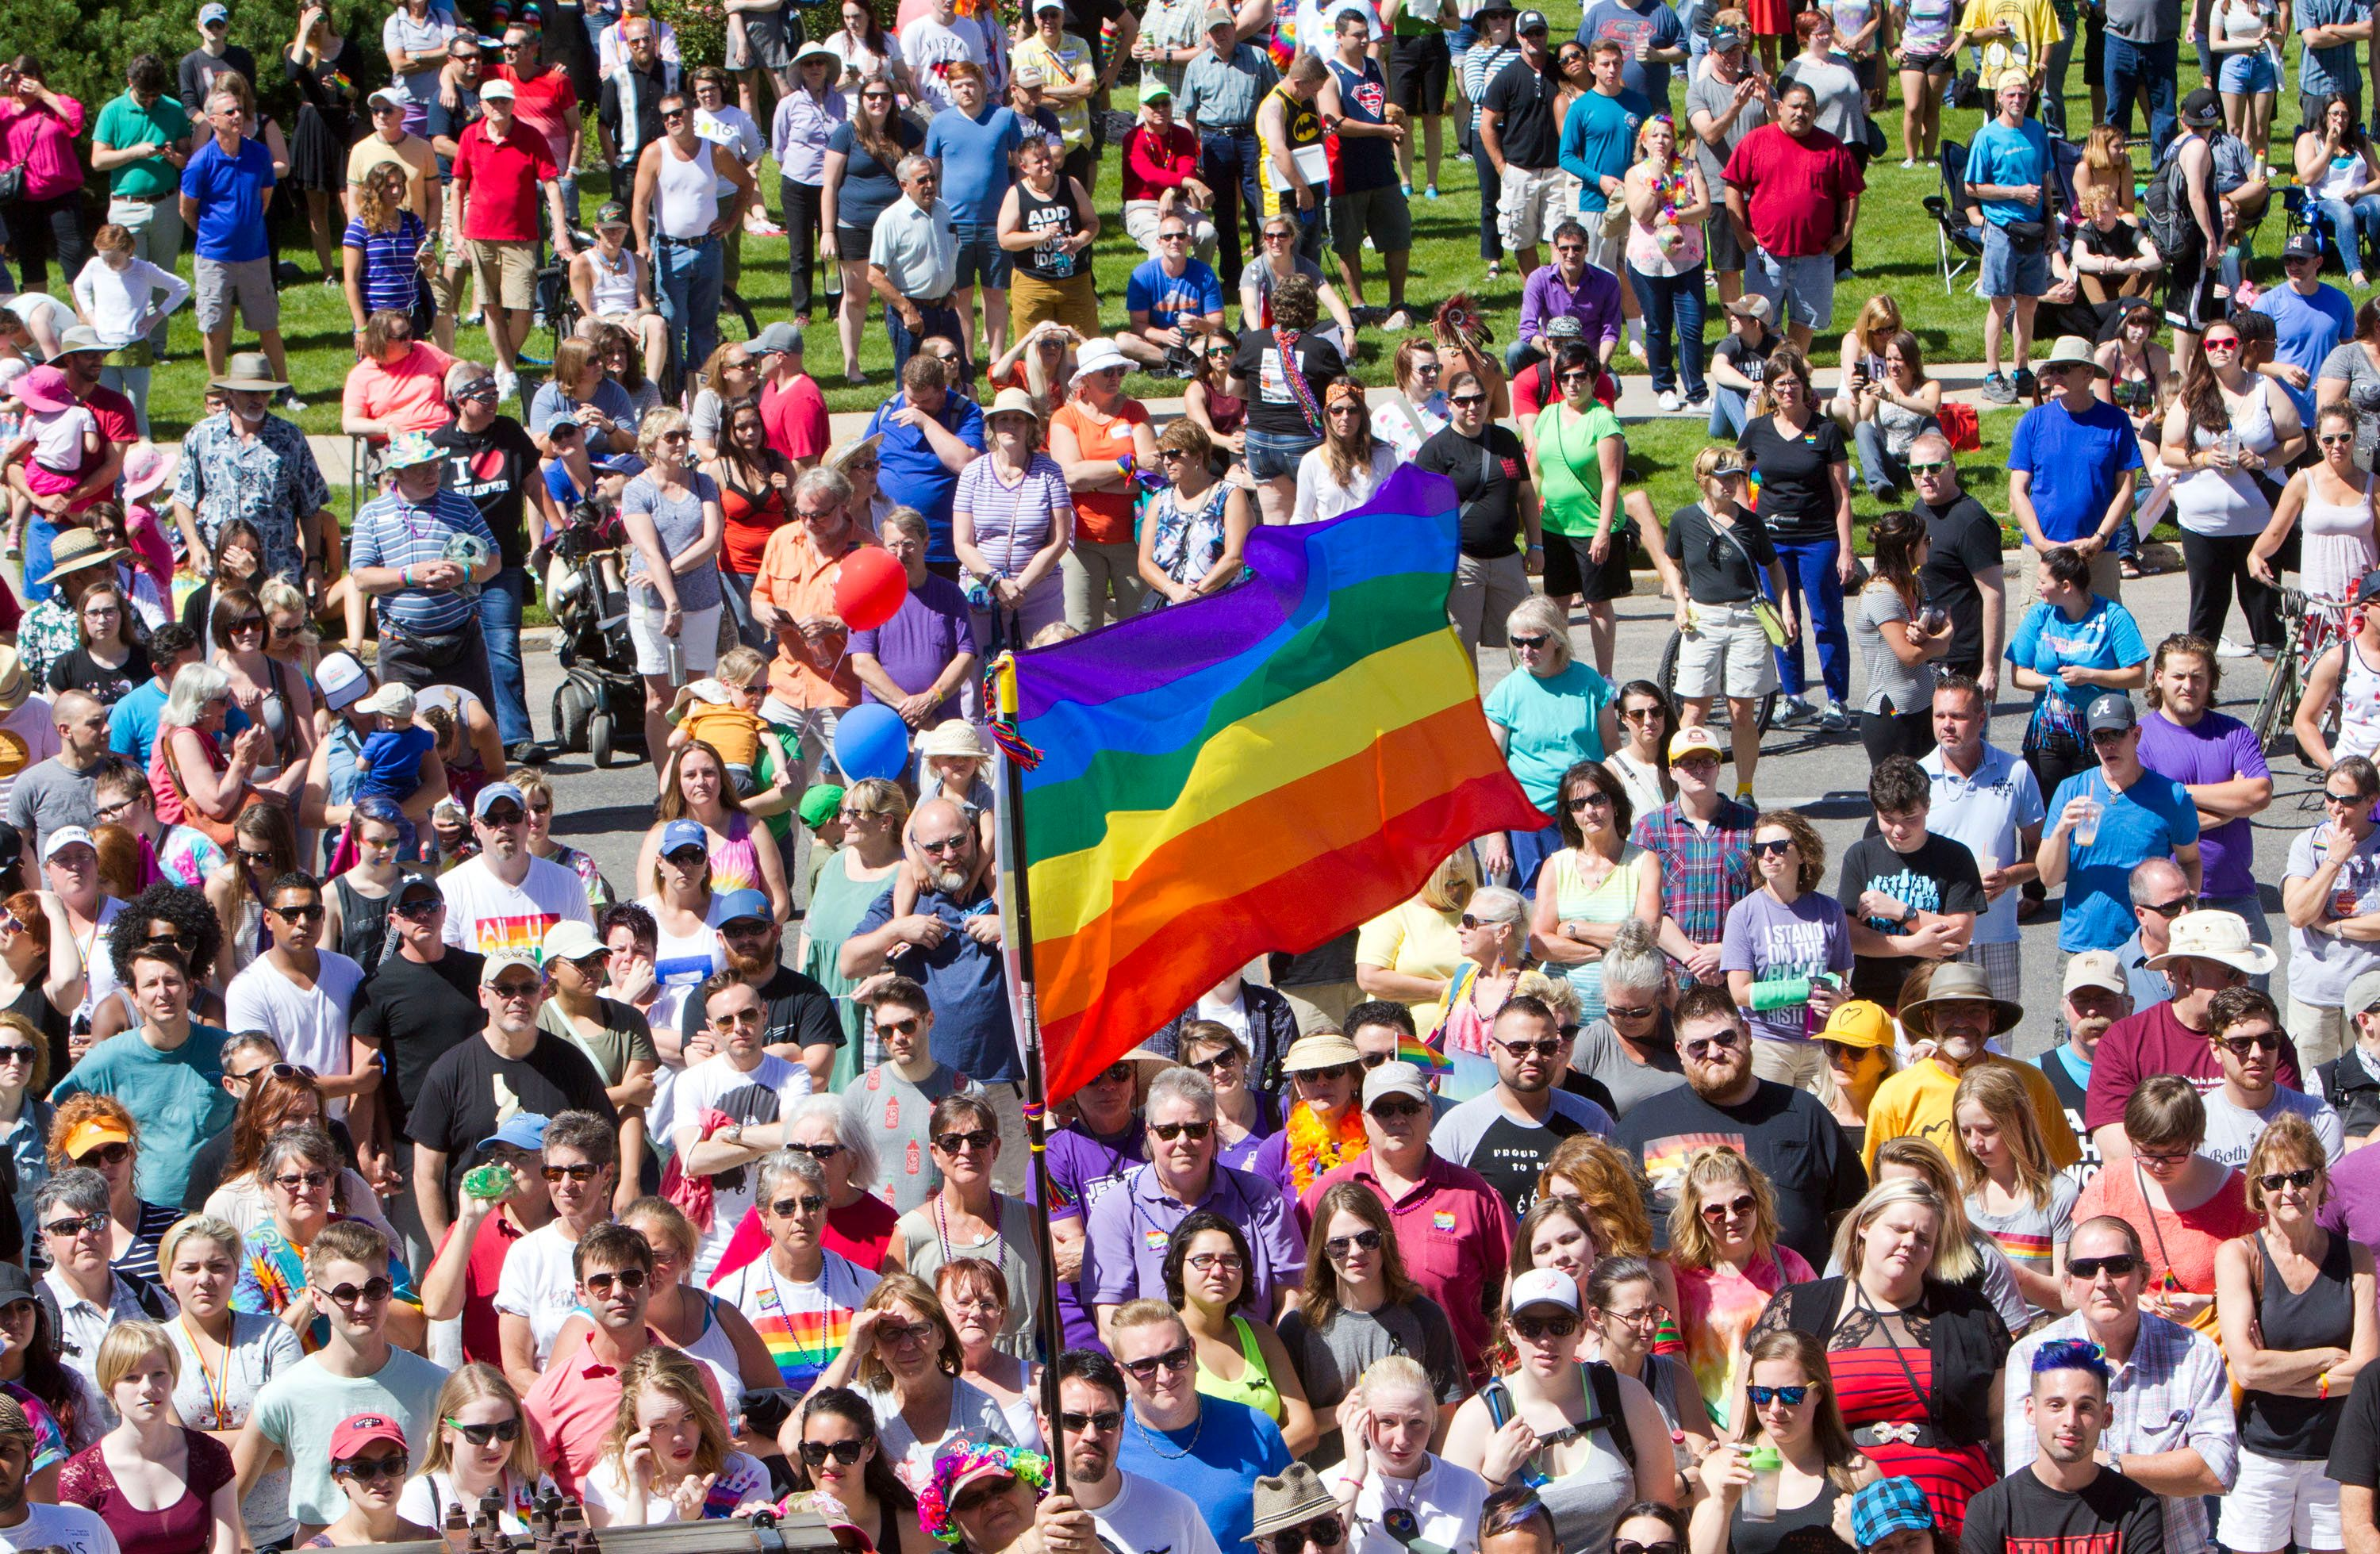 Thousands gather at Capitol Park in downtown Boise, Idaho, for the annual PrideFest rally and parade on Saturday, June 18, 2016. Speakers recounted the struggle for LGBT rights, and honored the vicitms of the mass shooting in Orlando, Fla., just a week before. (Darin Oswald/Idaho Statesman/TNS via Getty Images)